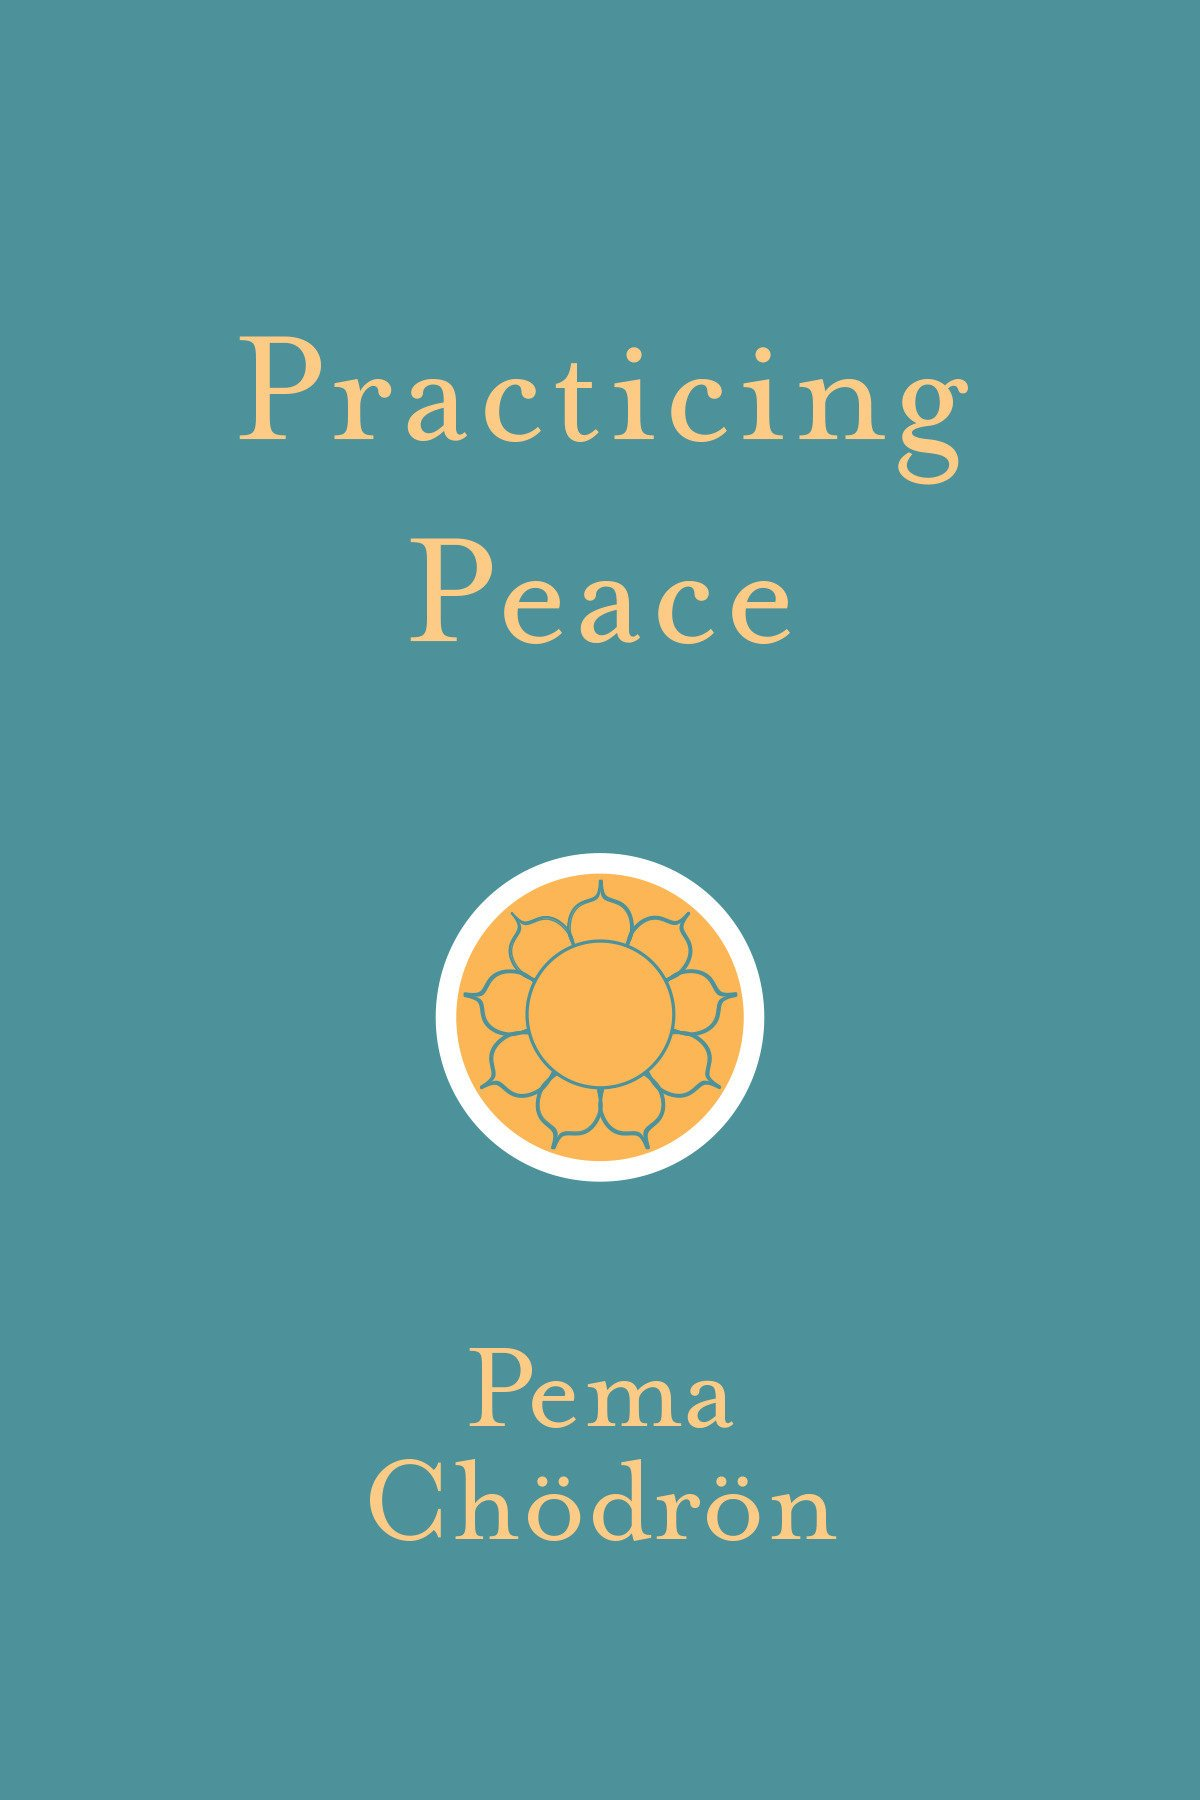 Pema Practicing cover art